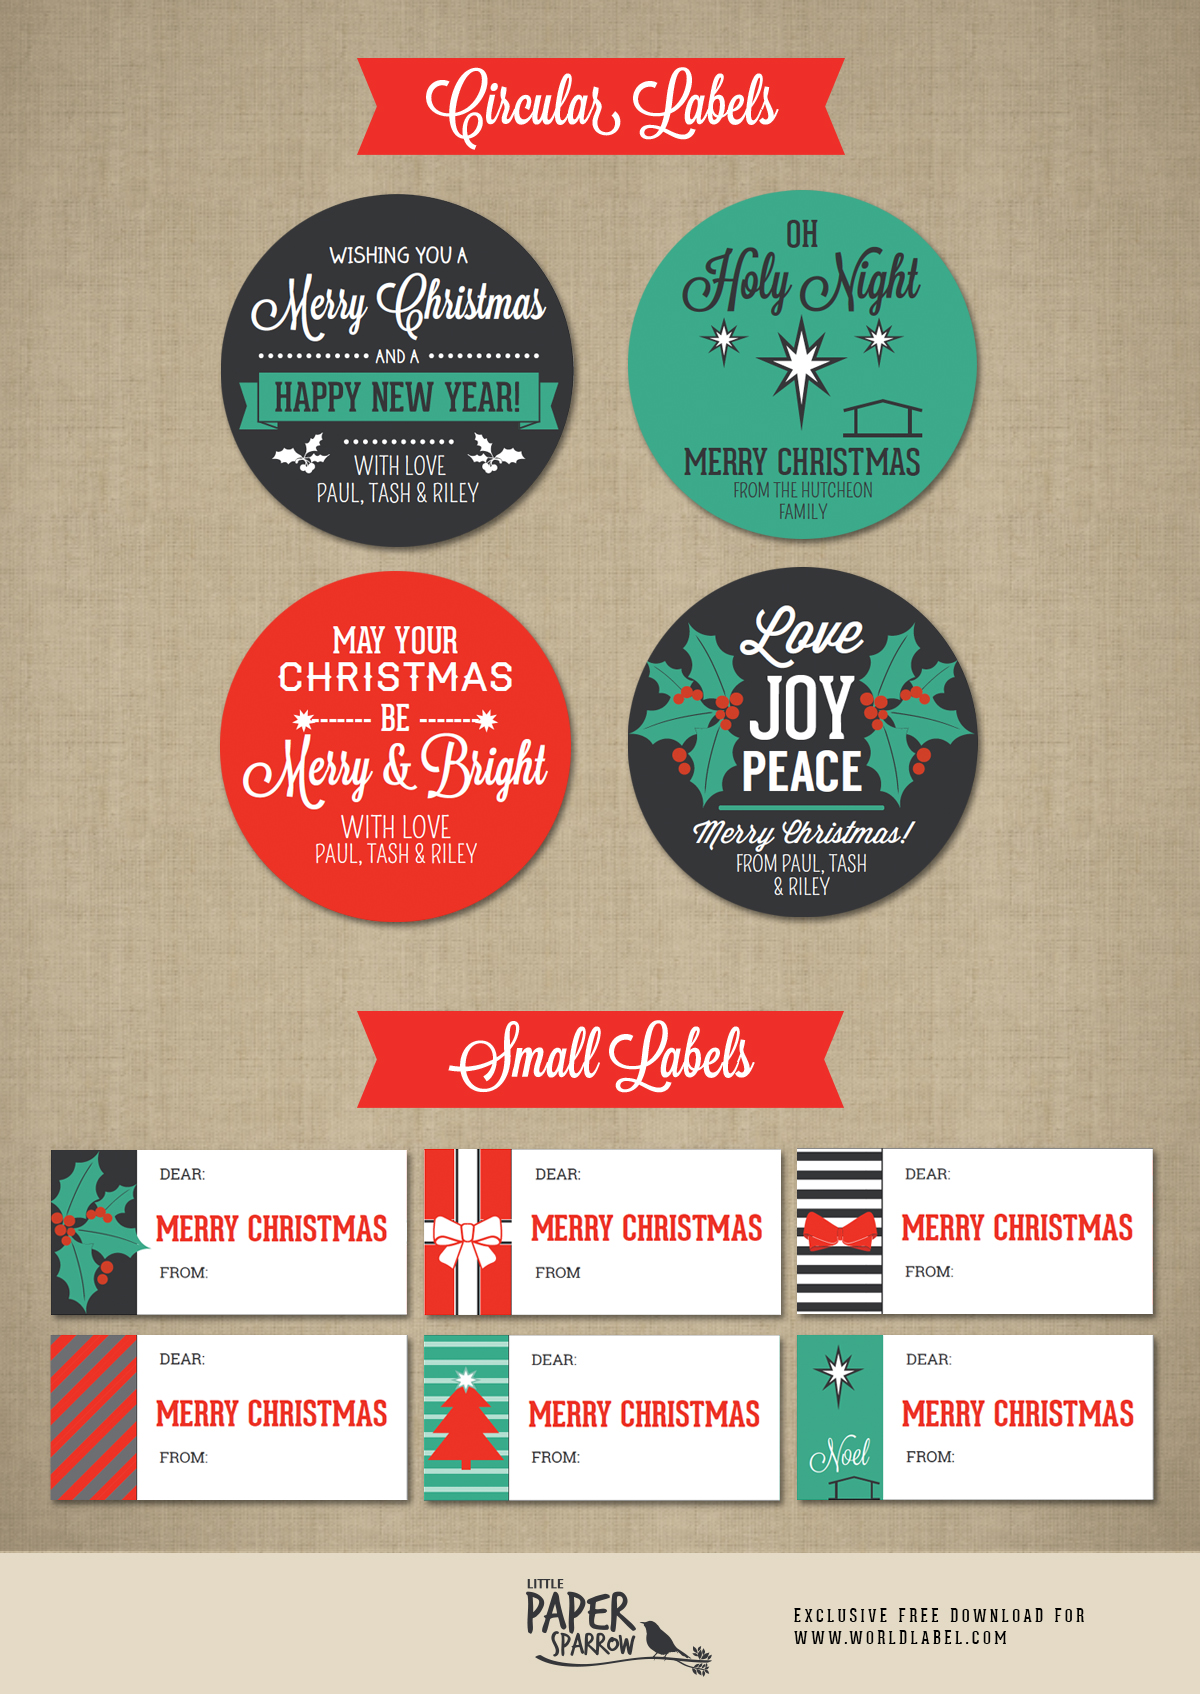 Merry Christmas Labels by Little Paper Sparrow | Worldlabel Blog